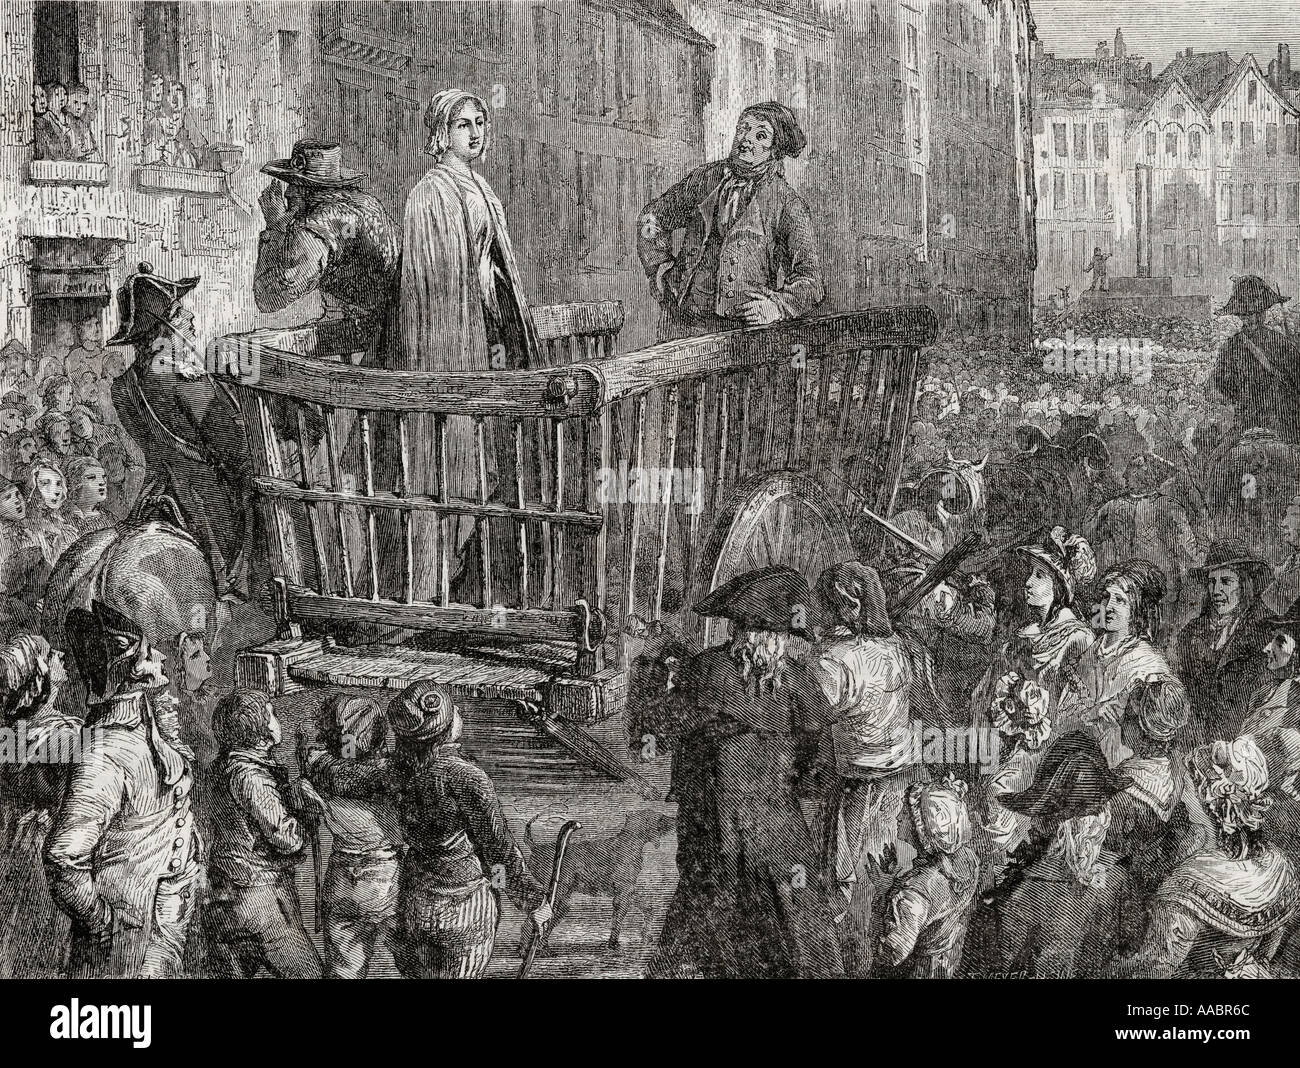 Charlotte Corday driven to her execution 17 July 1793 Charlotte Corday 1768 1798 French Revolutionary heroine - Stock Image